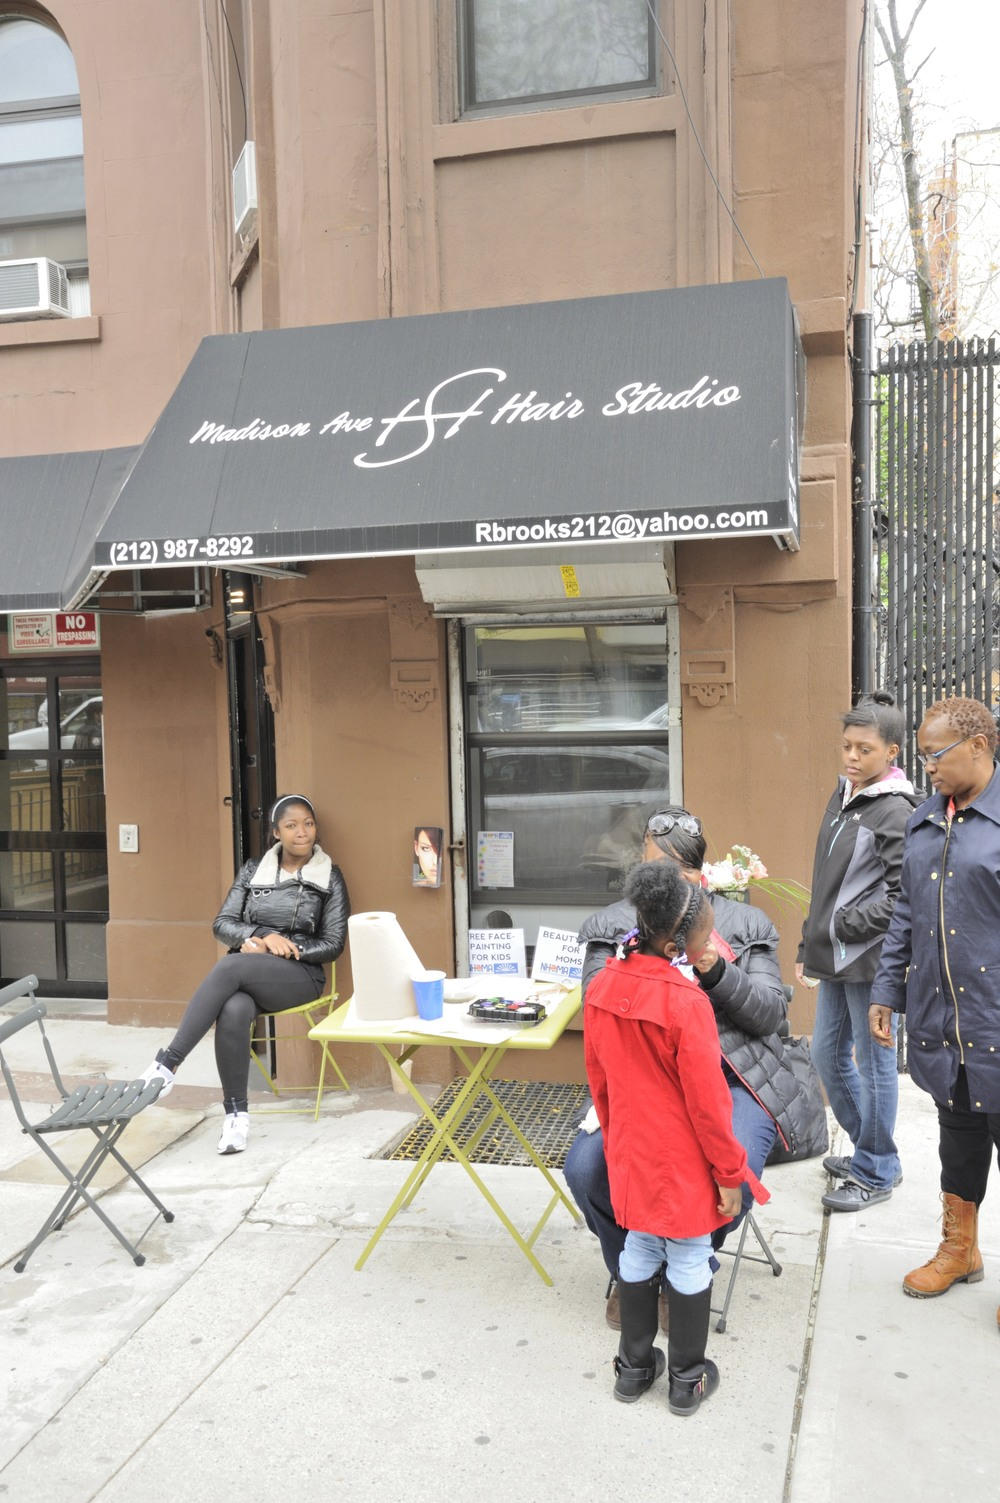 Madison Avenue Hair Studio